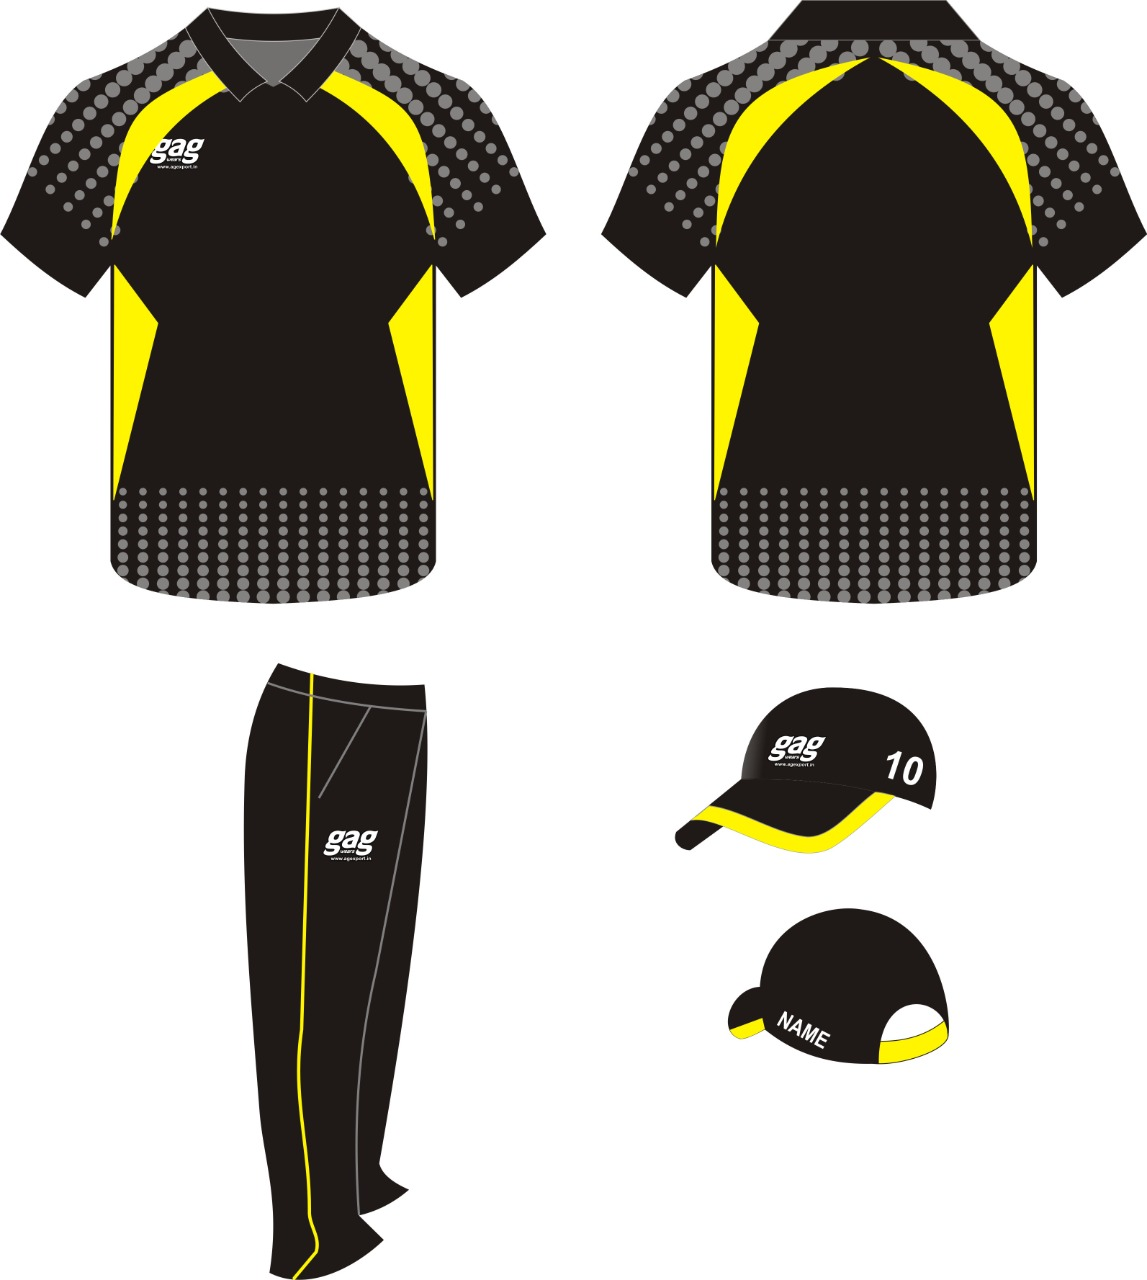 Indian Cricket Team Jersey Manufacturers in Jalandhar in Australia